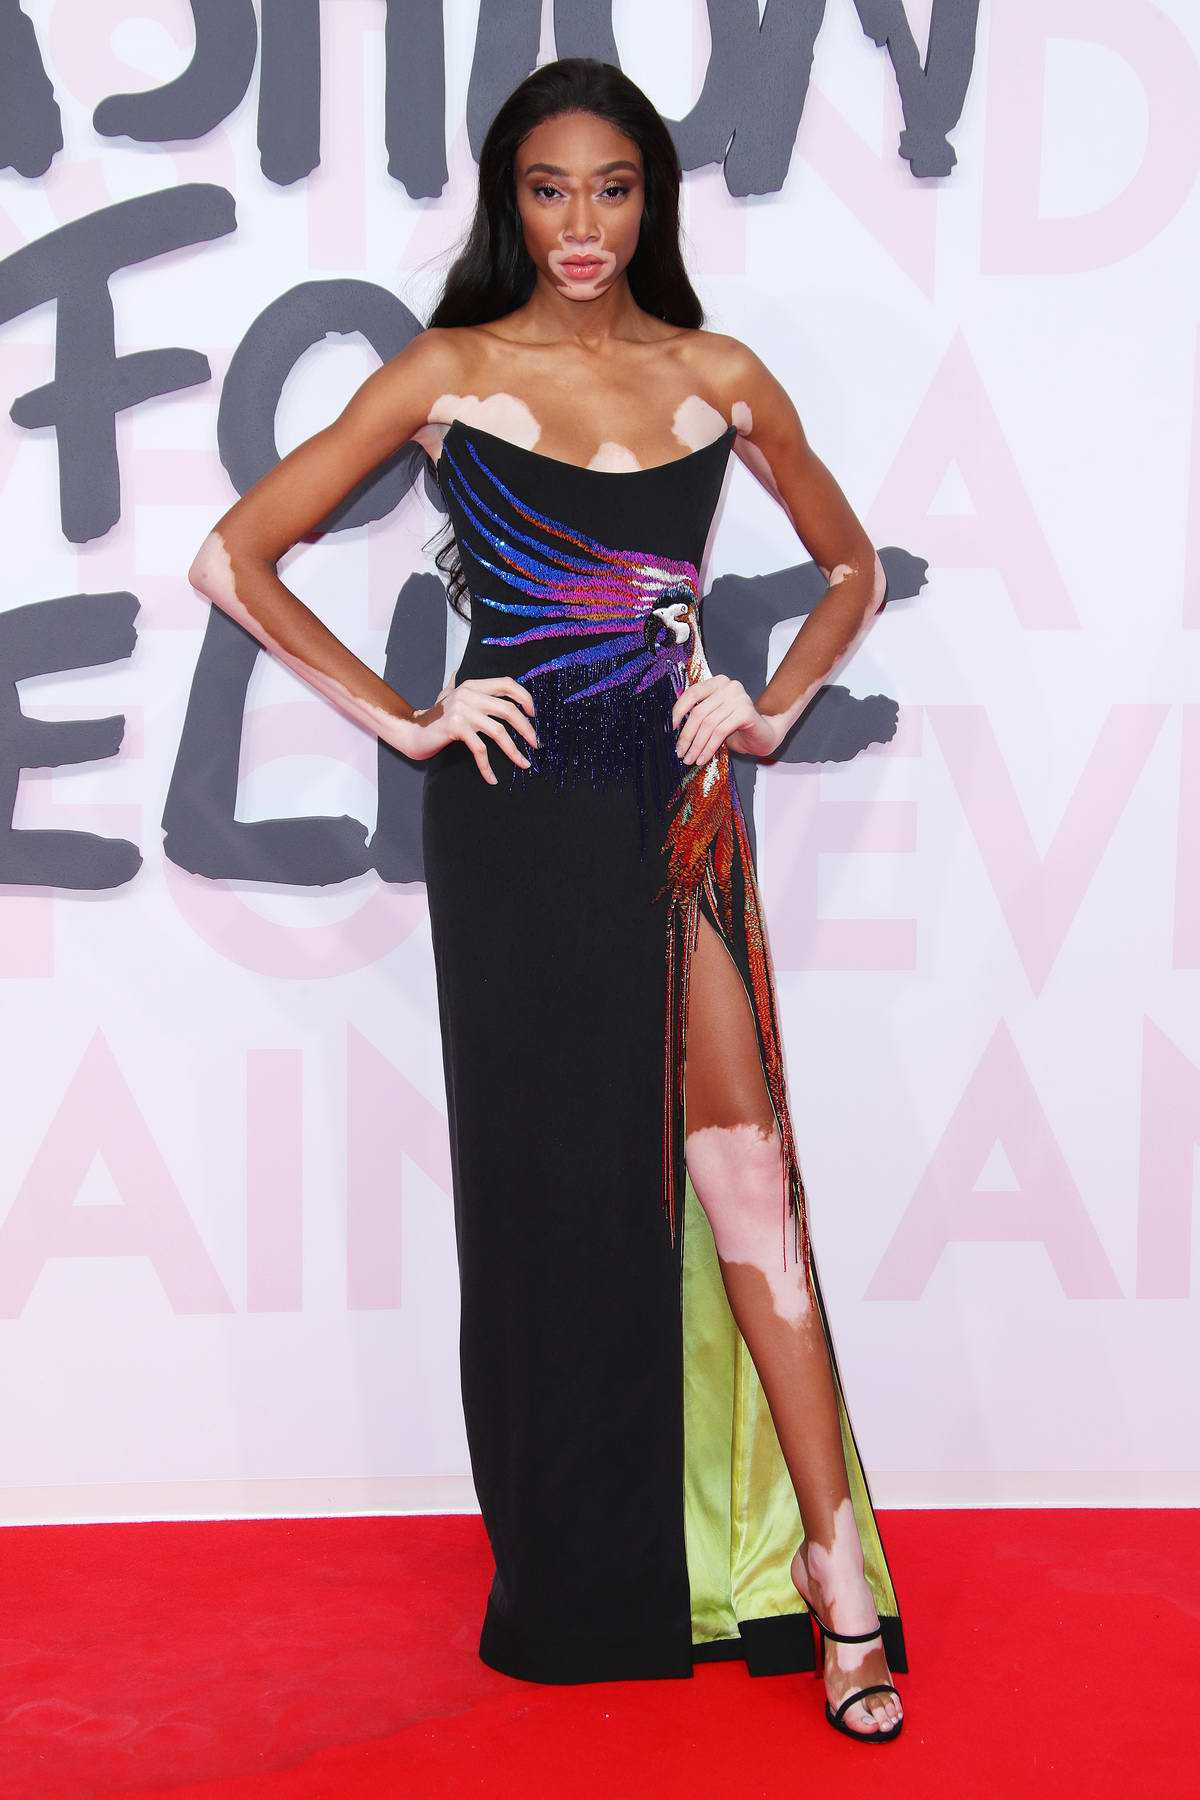 Winnie Harlow attends Fashion For Relief, Cannes 2018 during the 71st annual Cannes Film Festival, France